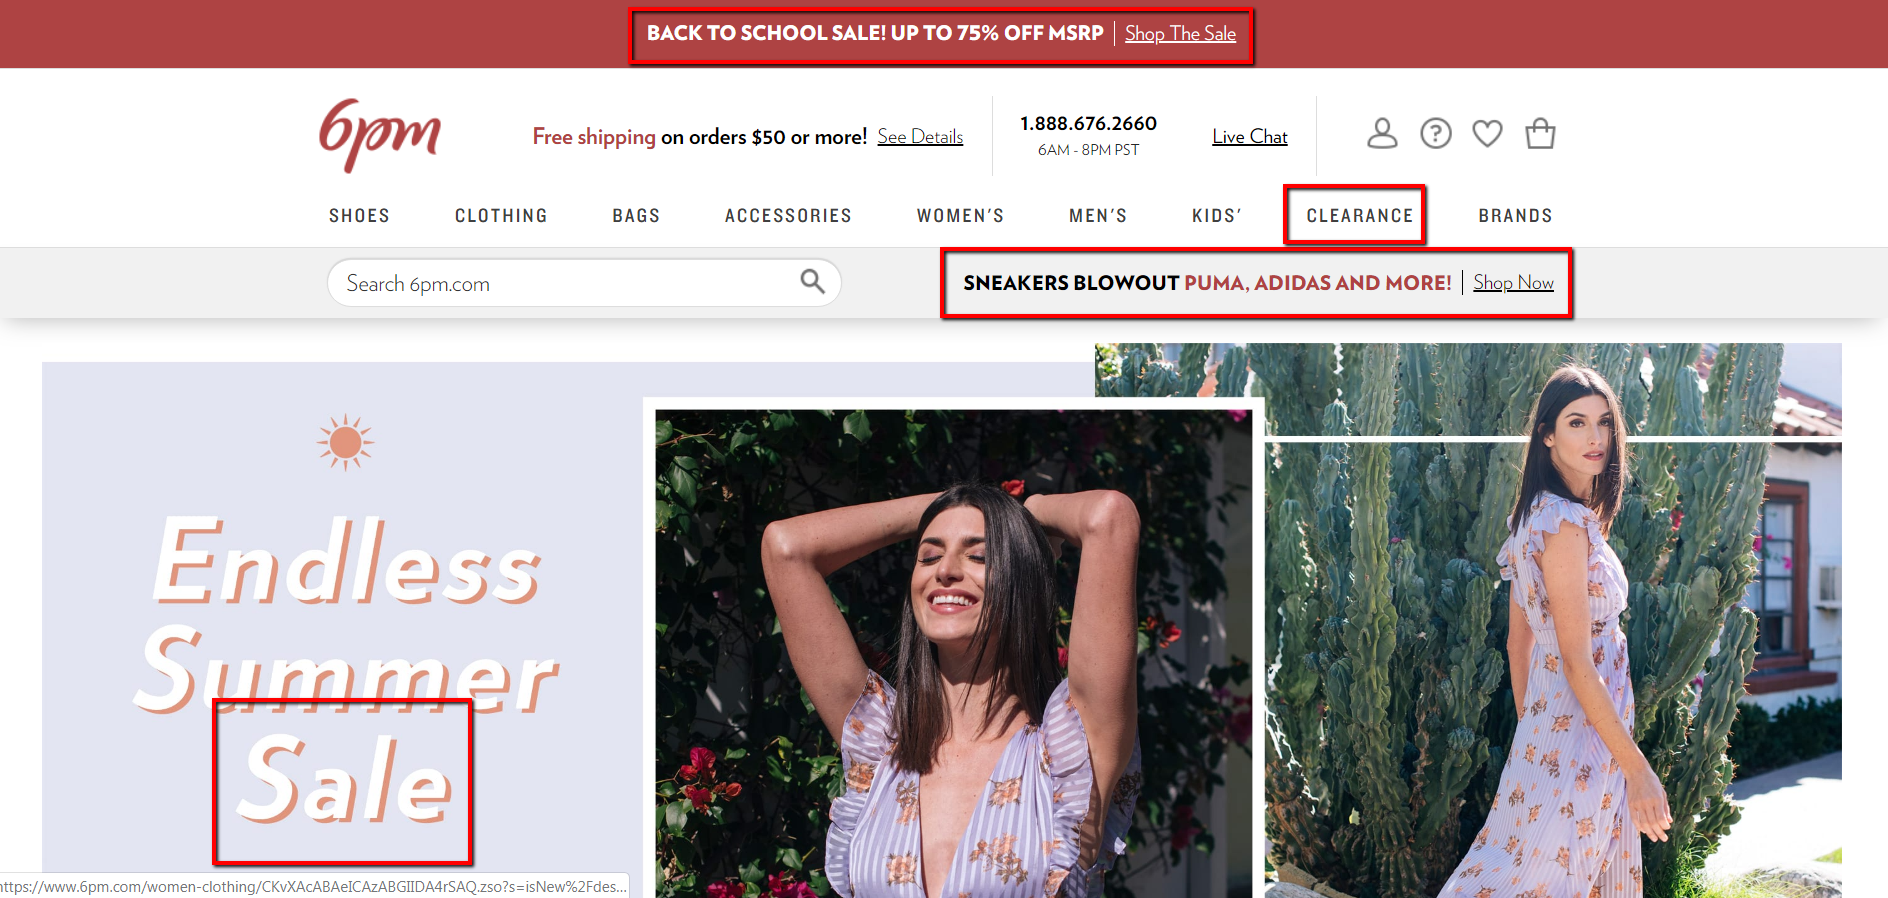 How to Increase Ecommerce Conversion Rates